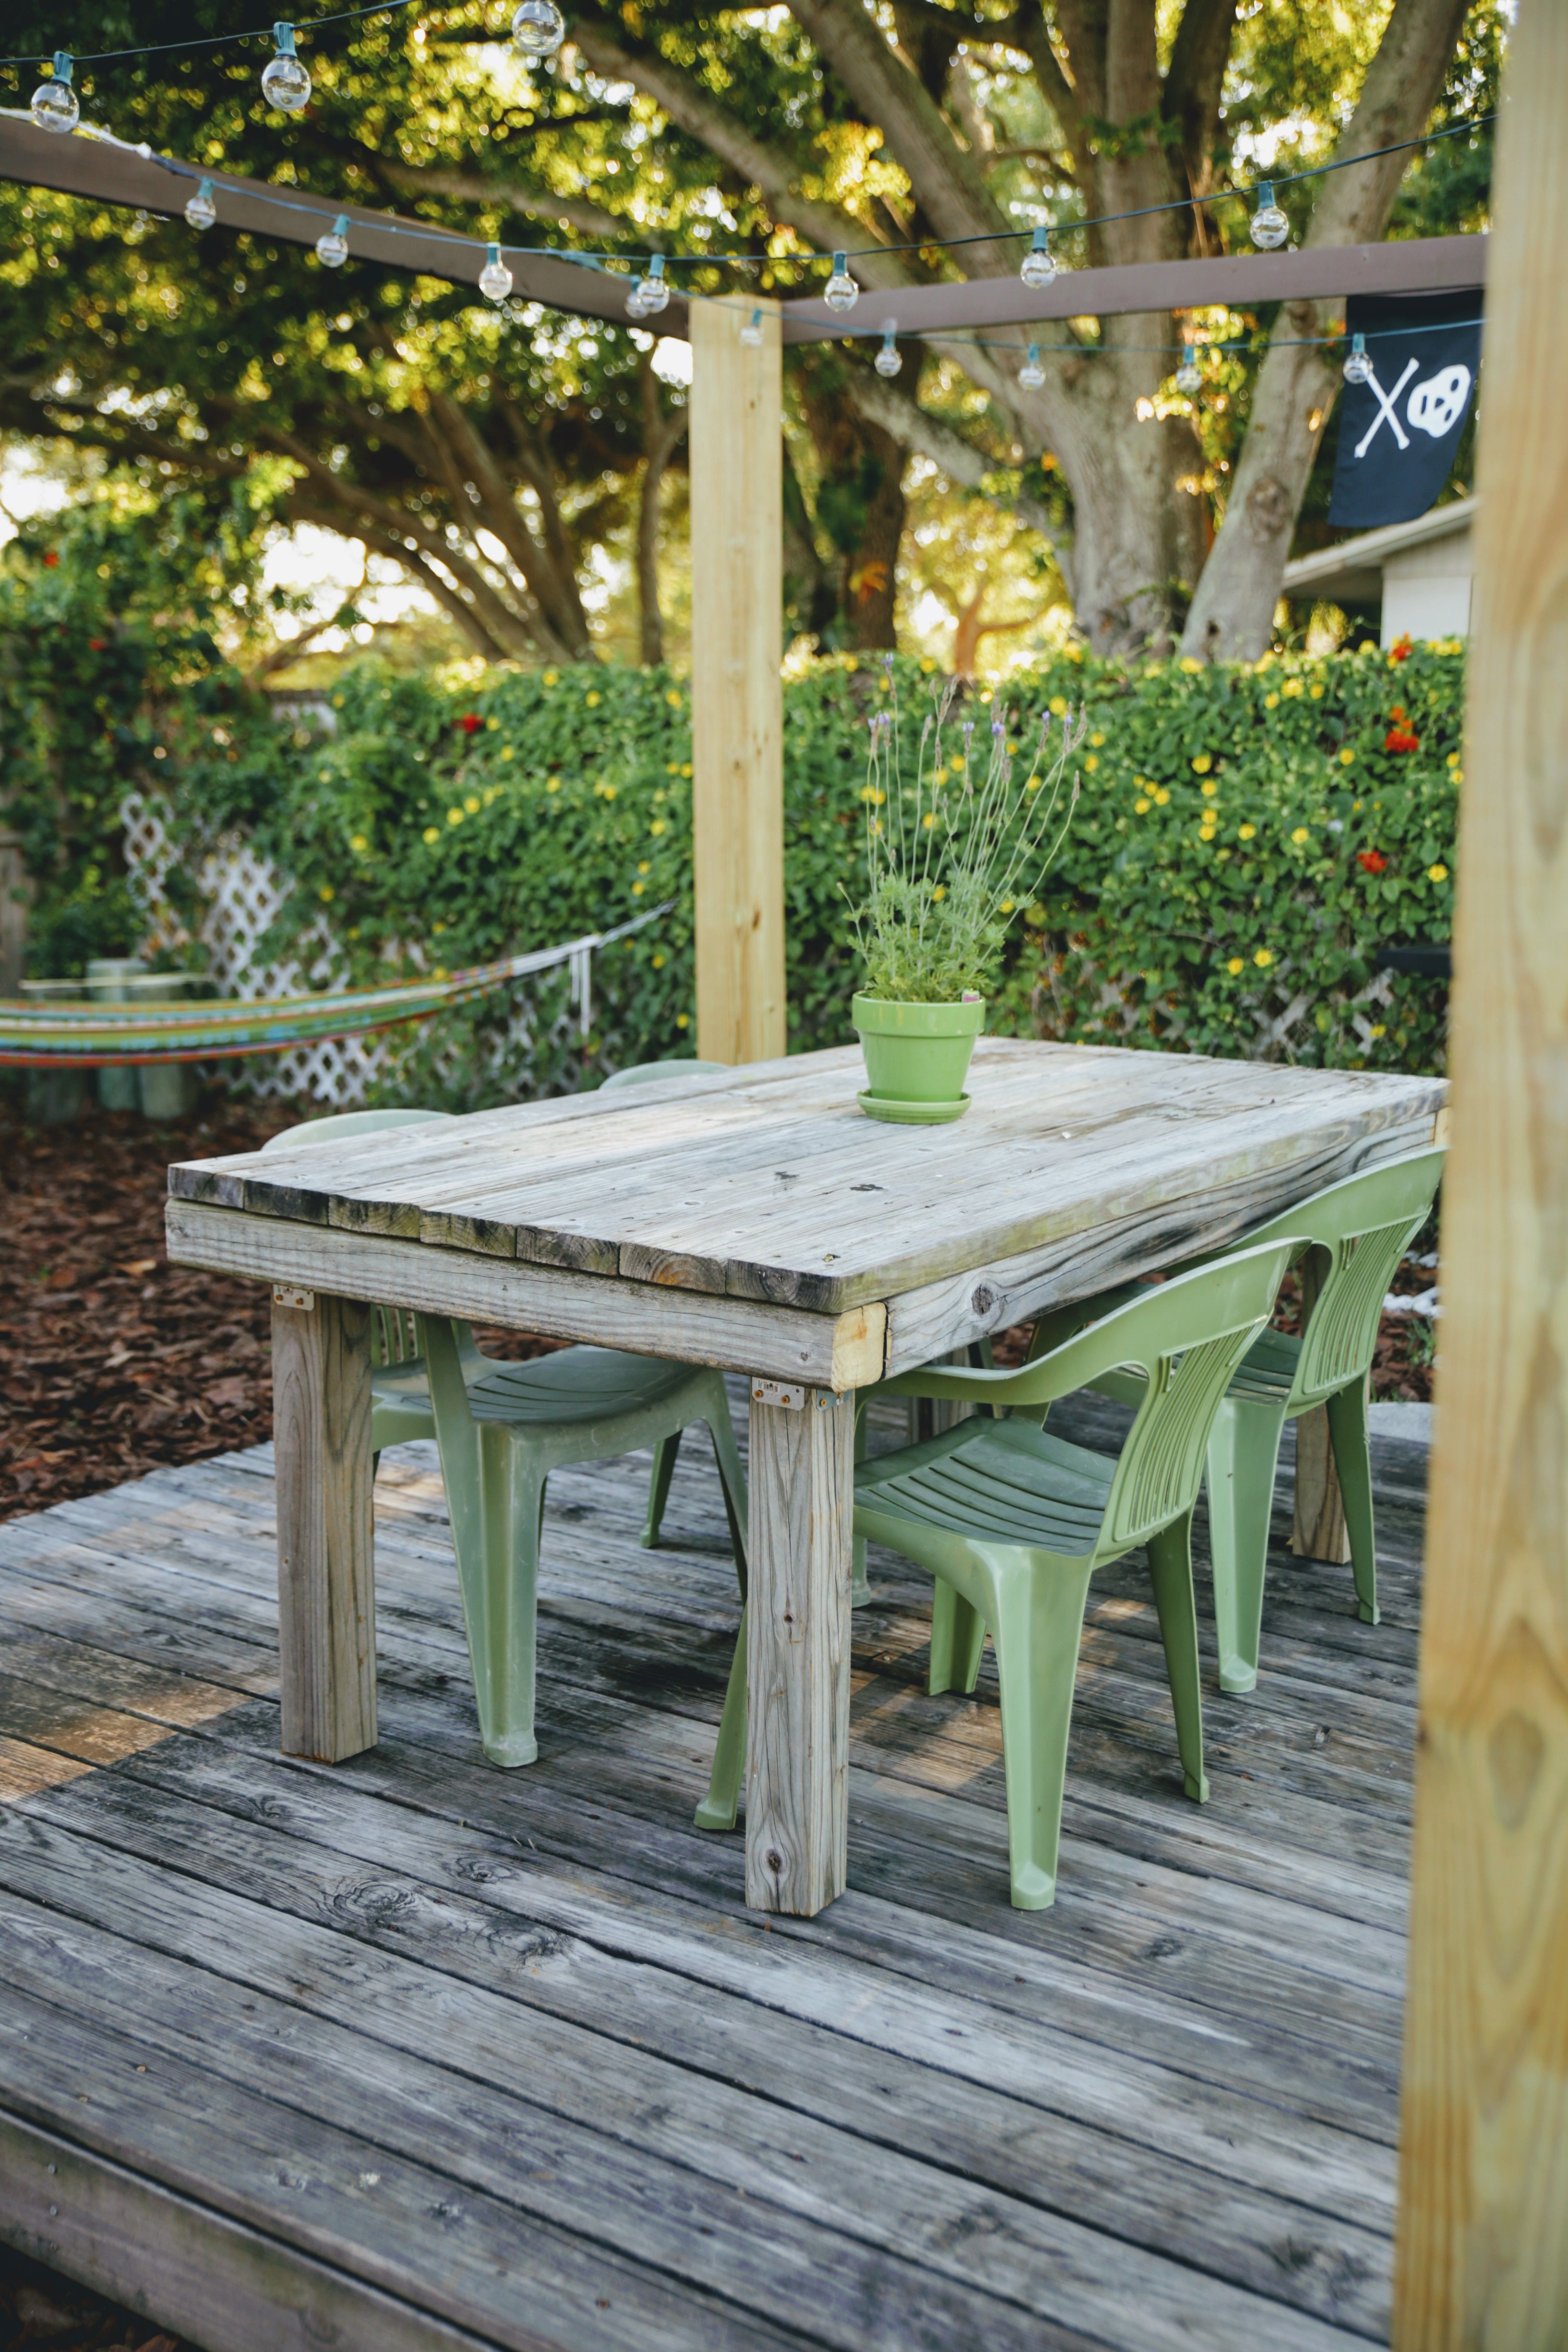 diy outdoor dining table made from reclaimed picnic table